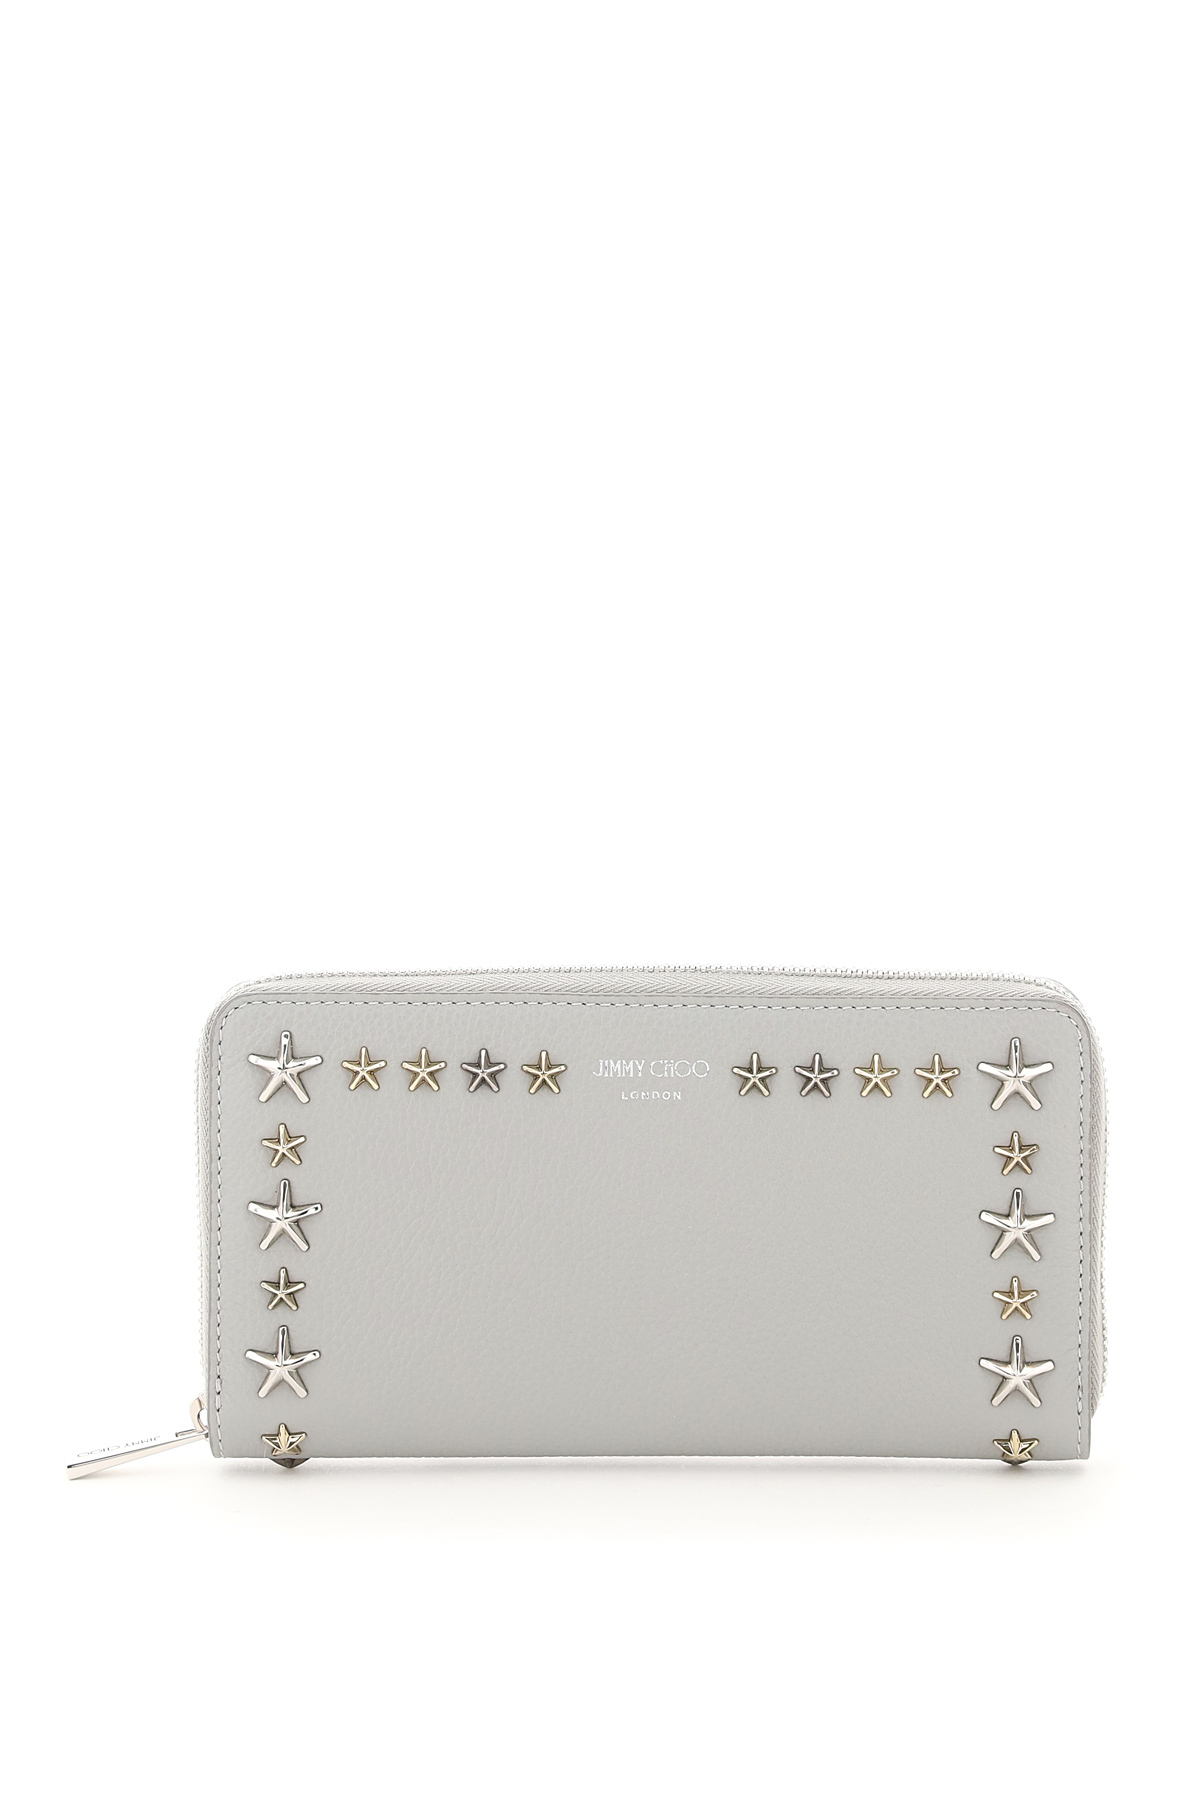 Jimmy Choo PIPPA ZIP AROUND WALLET STAR STUDS